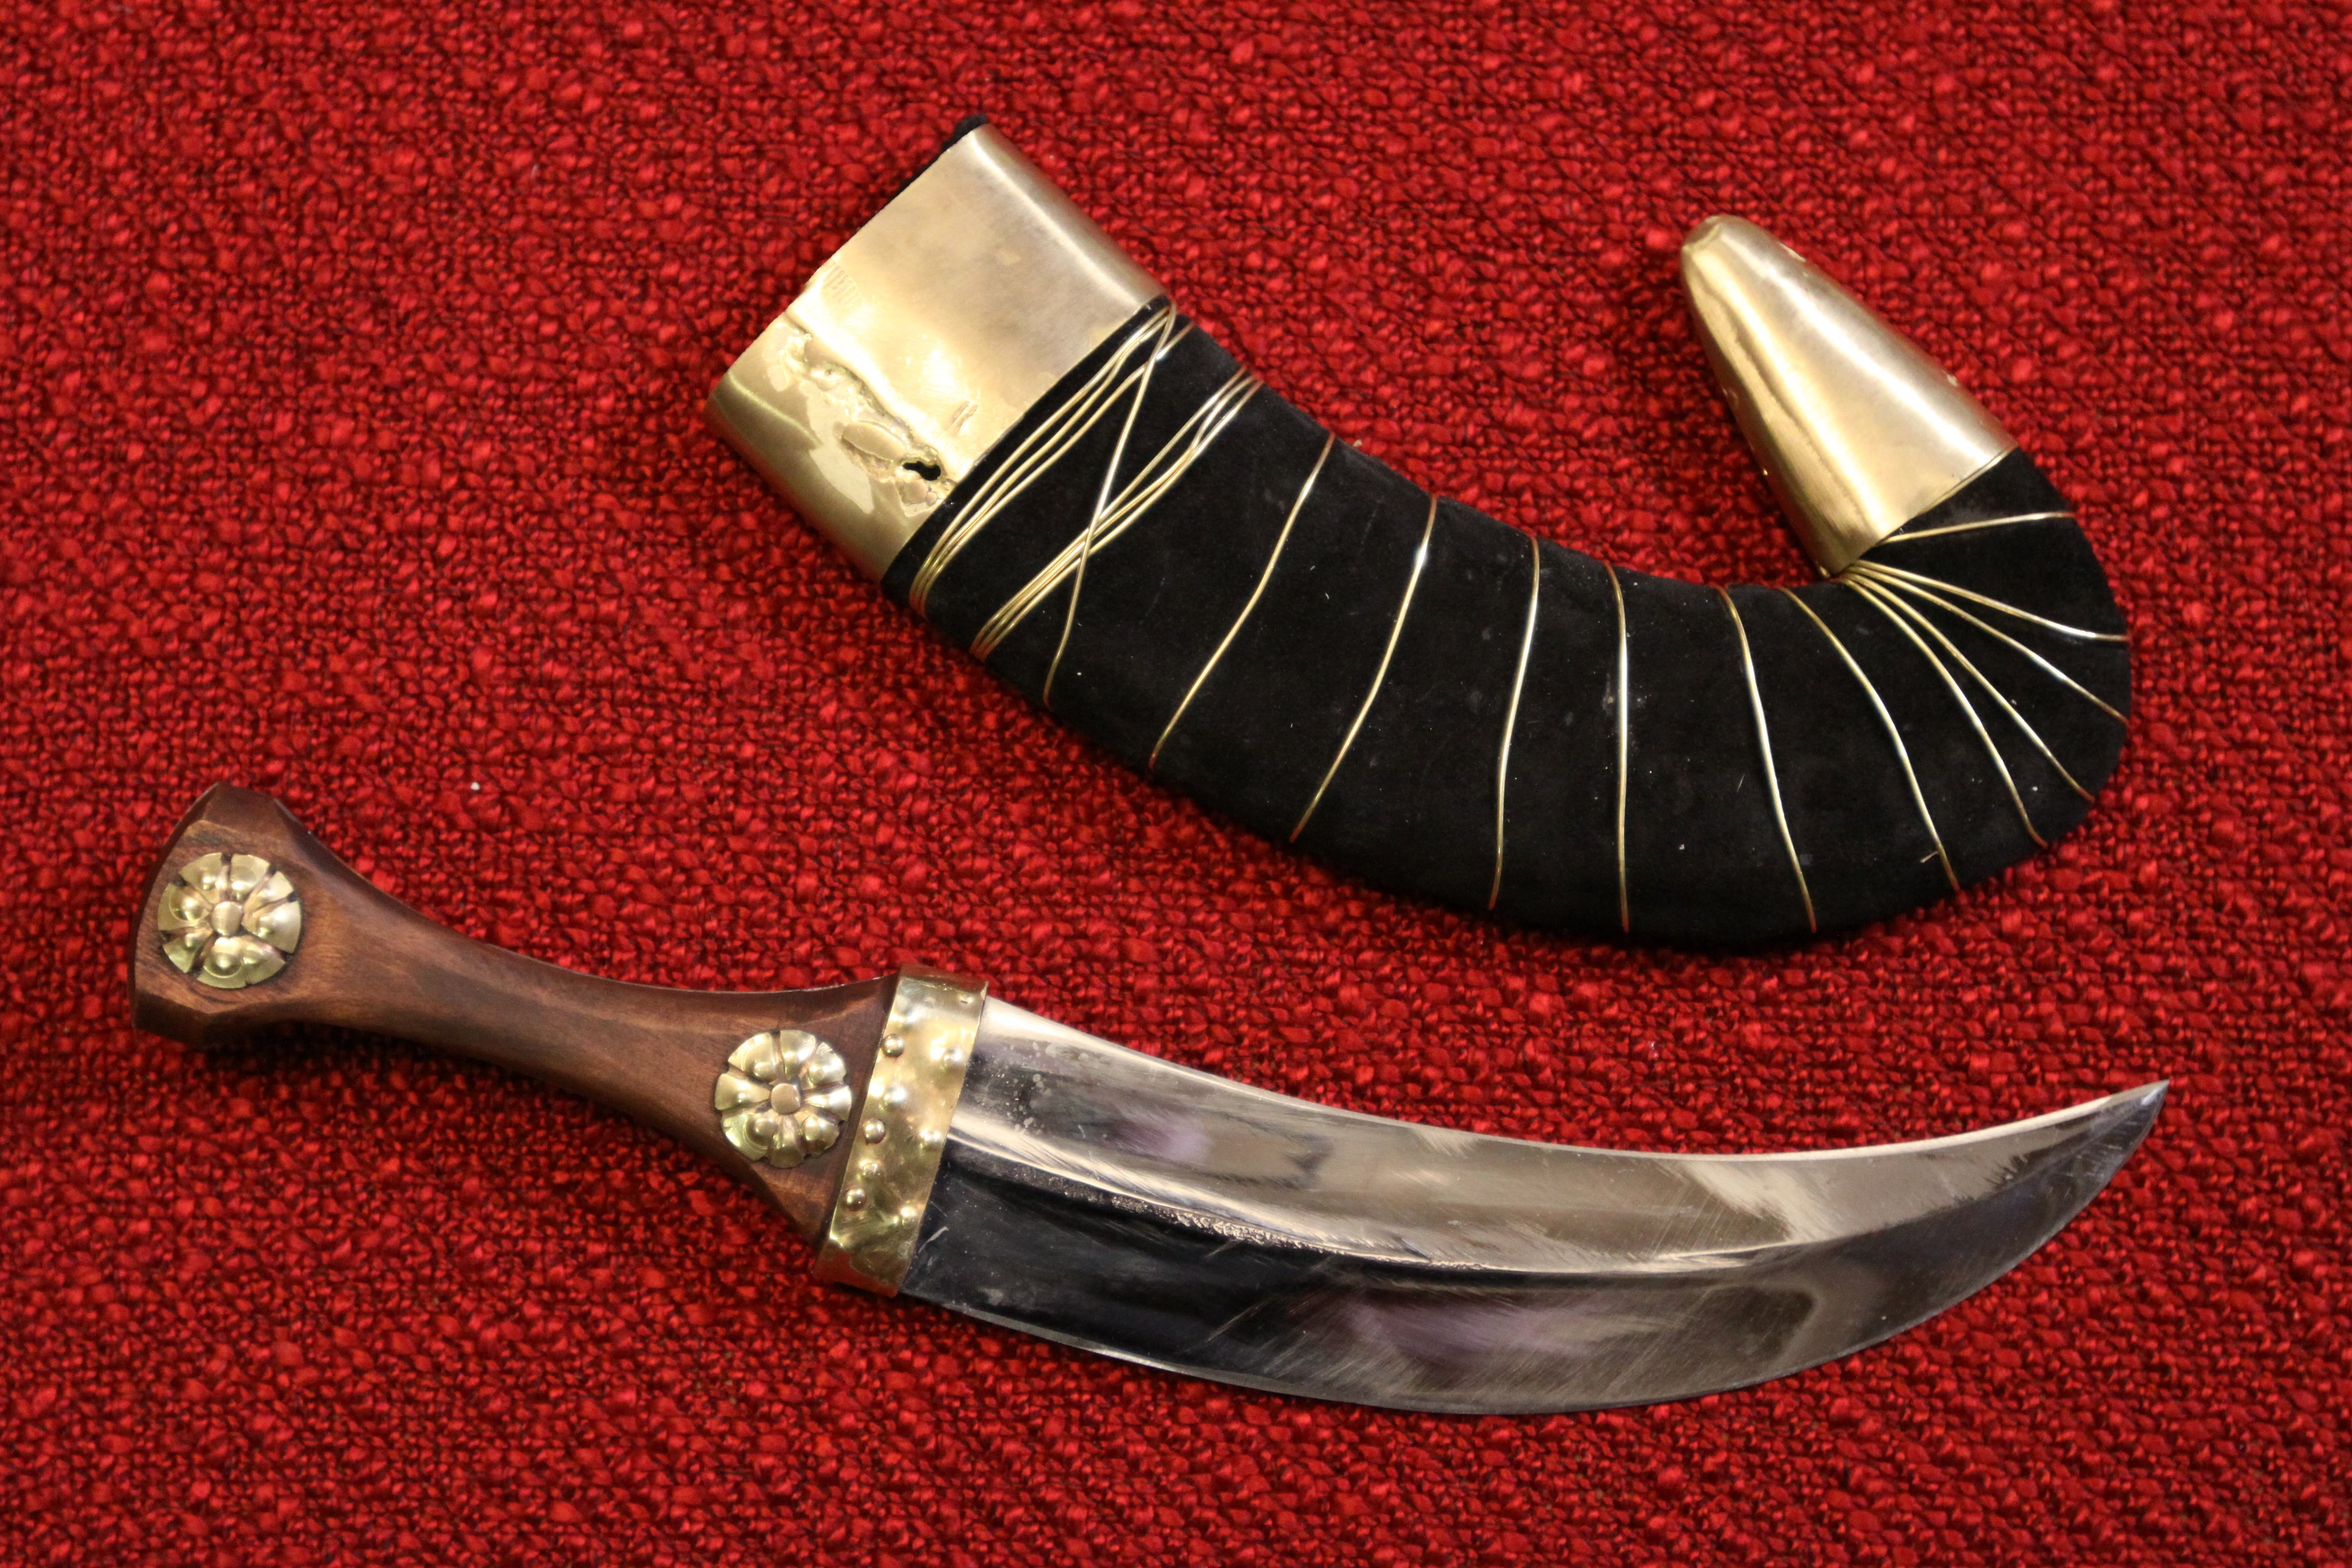 Lawrence of Arabia's Jambia knife